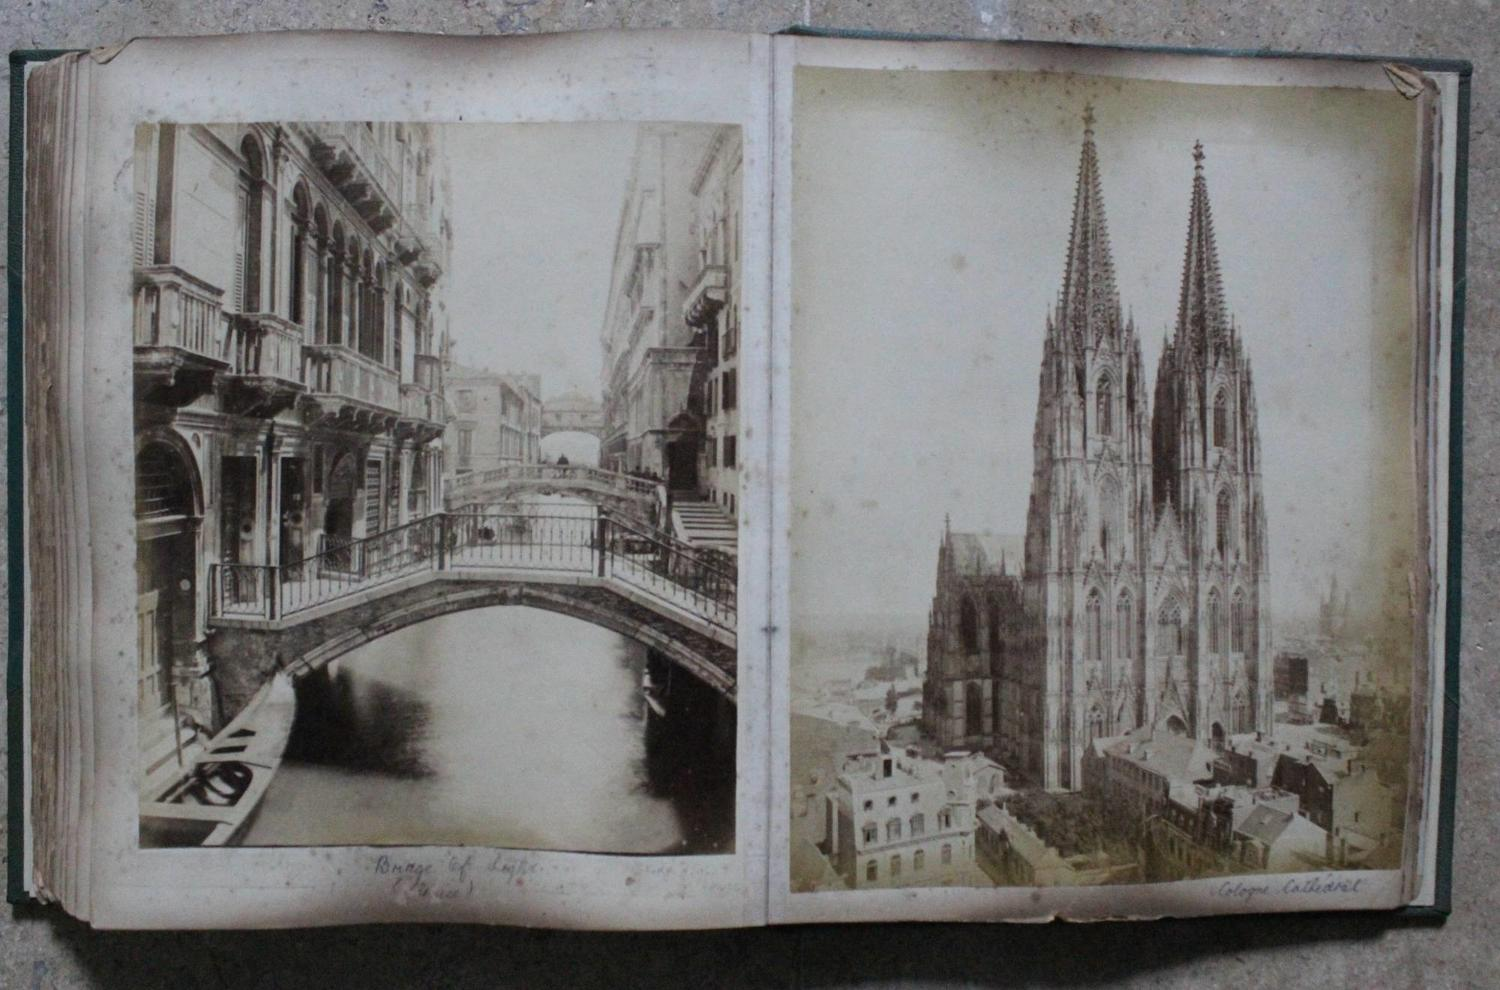 19th Century European Grand Tour Photograph Album